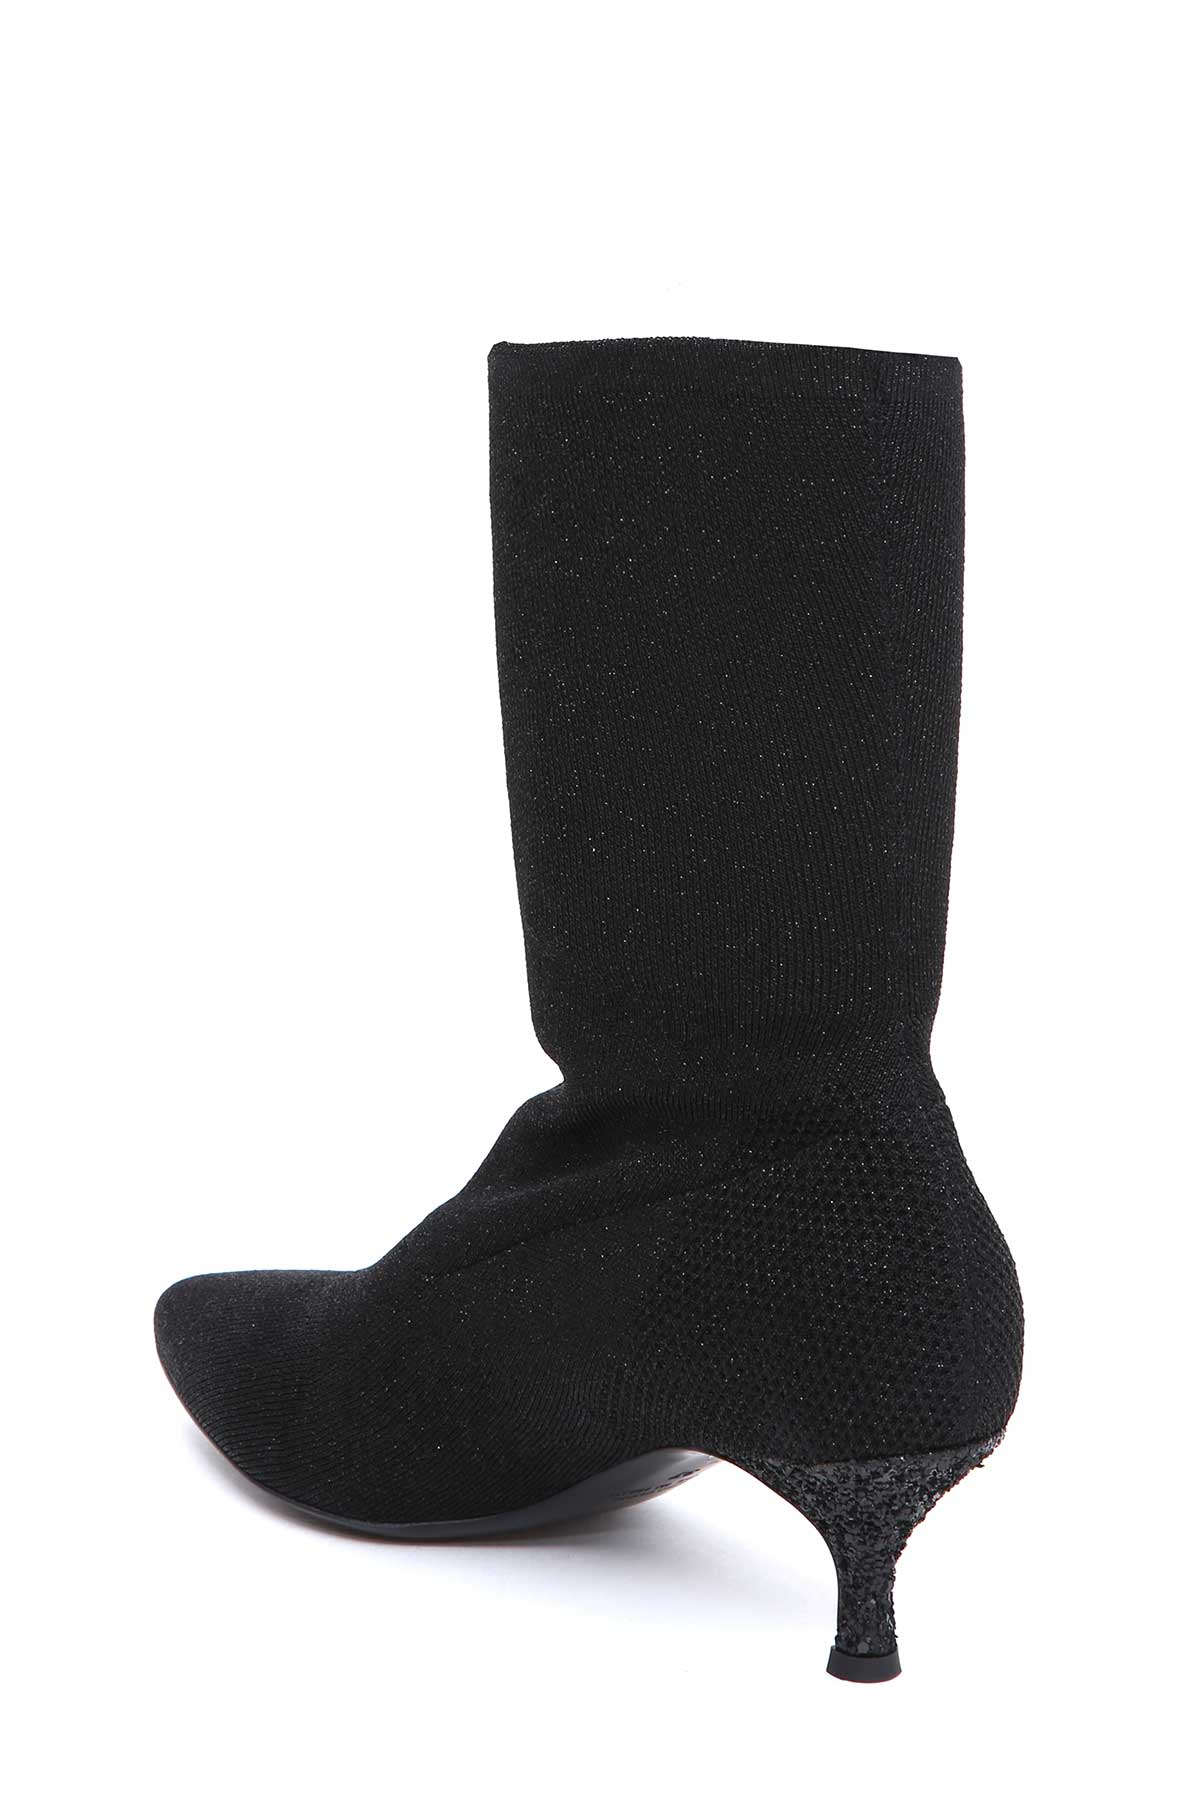 Strategia Socks Booties Footaction Sale Online Buy Cheap Prices Discount Countdown Package Explore Sale Online SuL94t